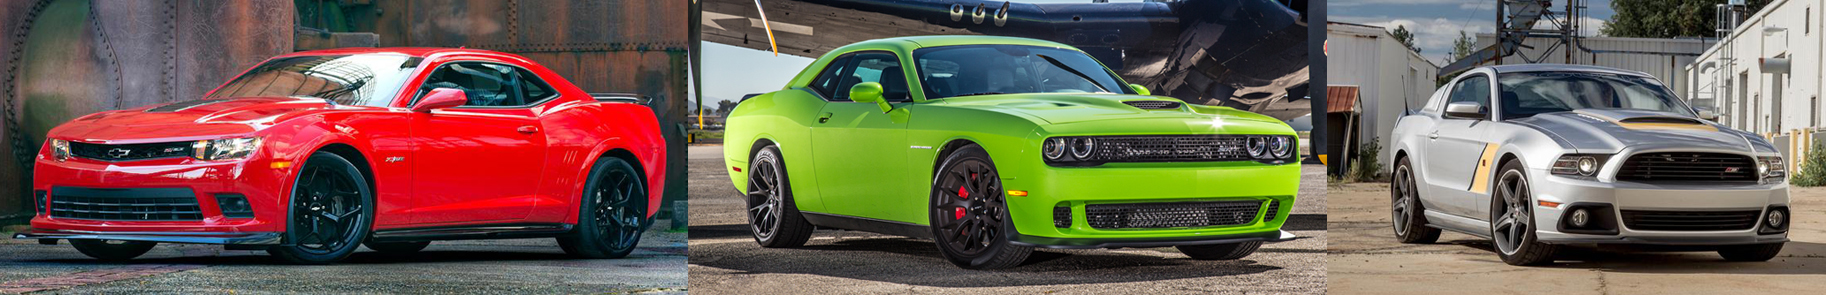 Chevy Camaro vs Dodge Challenger vs Ford Mustang  060 Specs